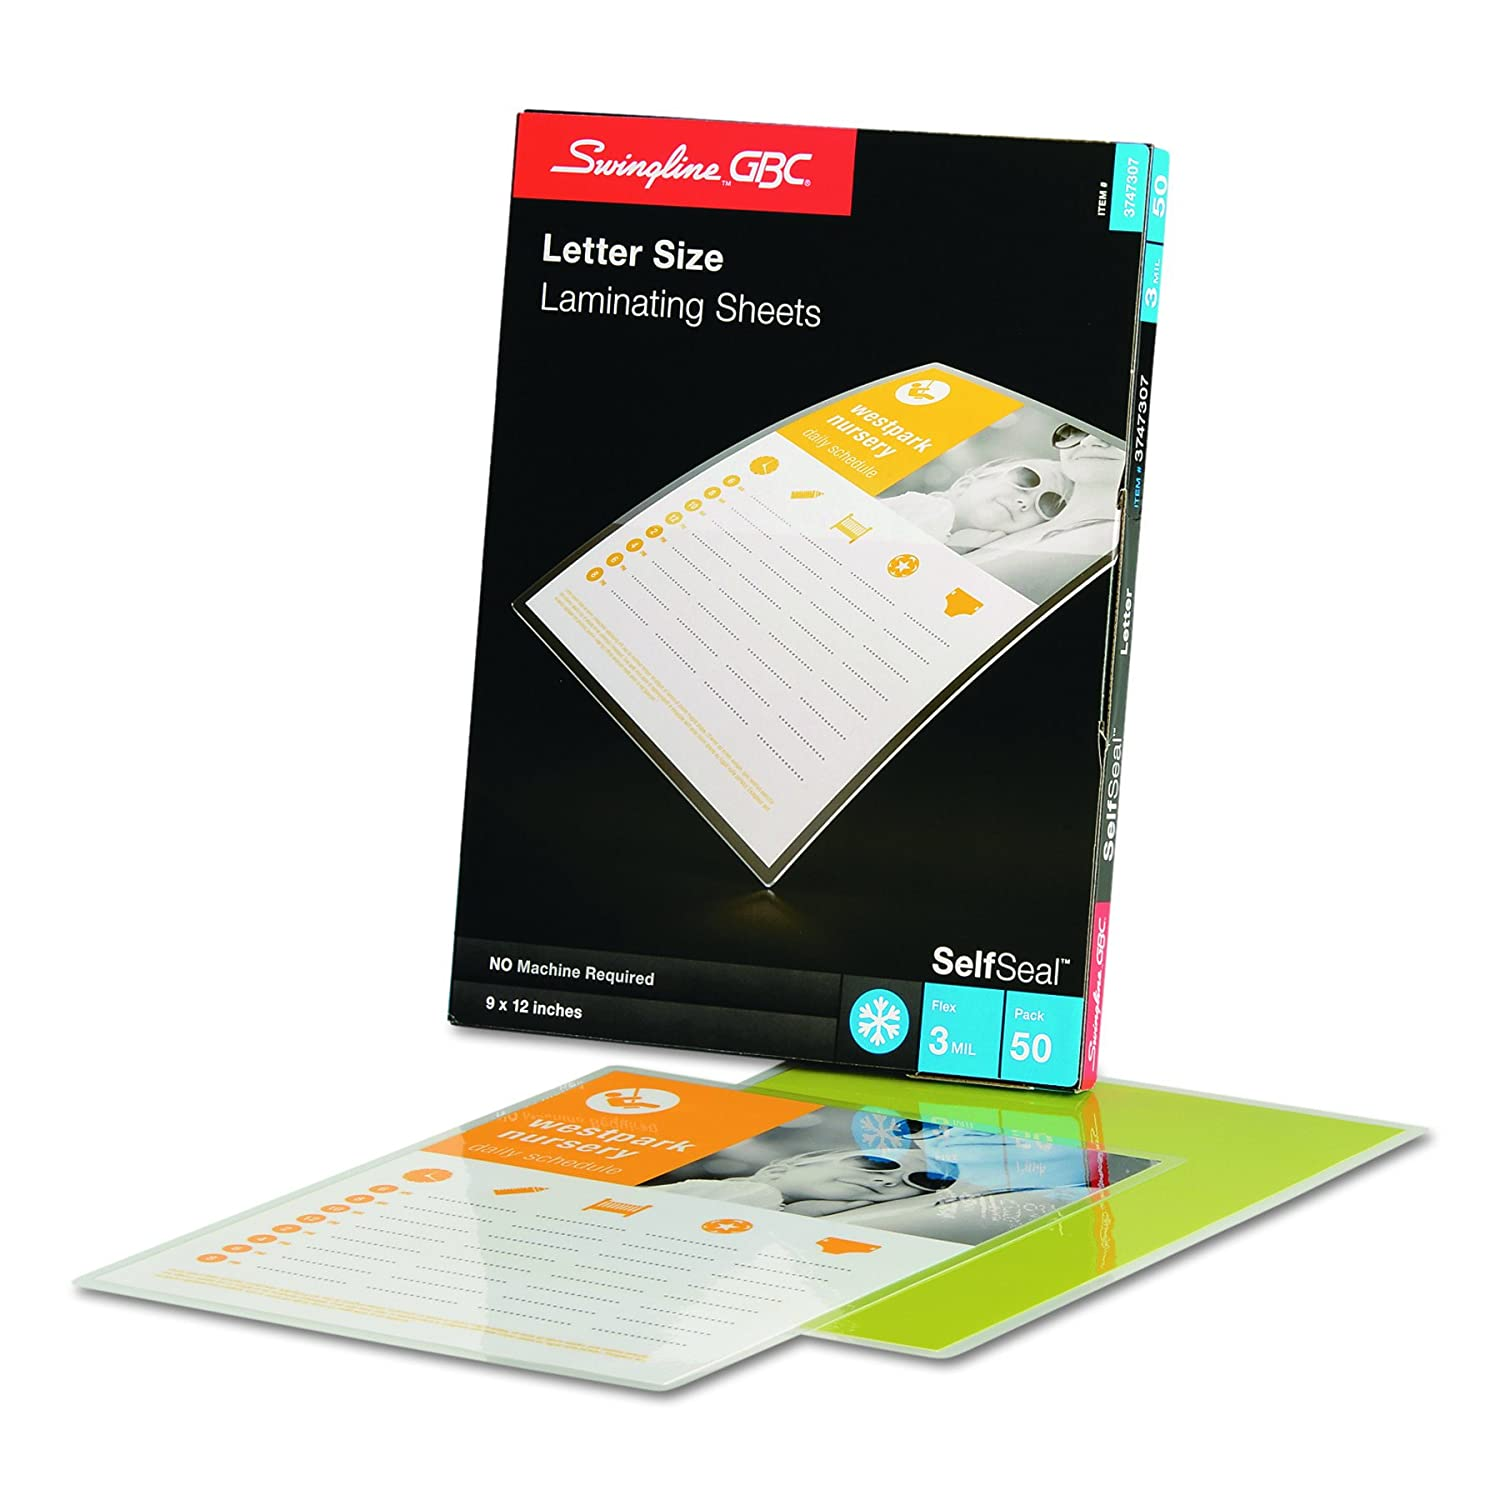 Swingline GBC SelfSeal Self Adhesive Laminating Sheet, Letter Size, Glossy, 3 Mil, 50 Pack (3747307) ACCO Brands DOBA-GBC3747307